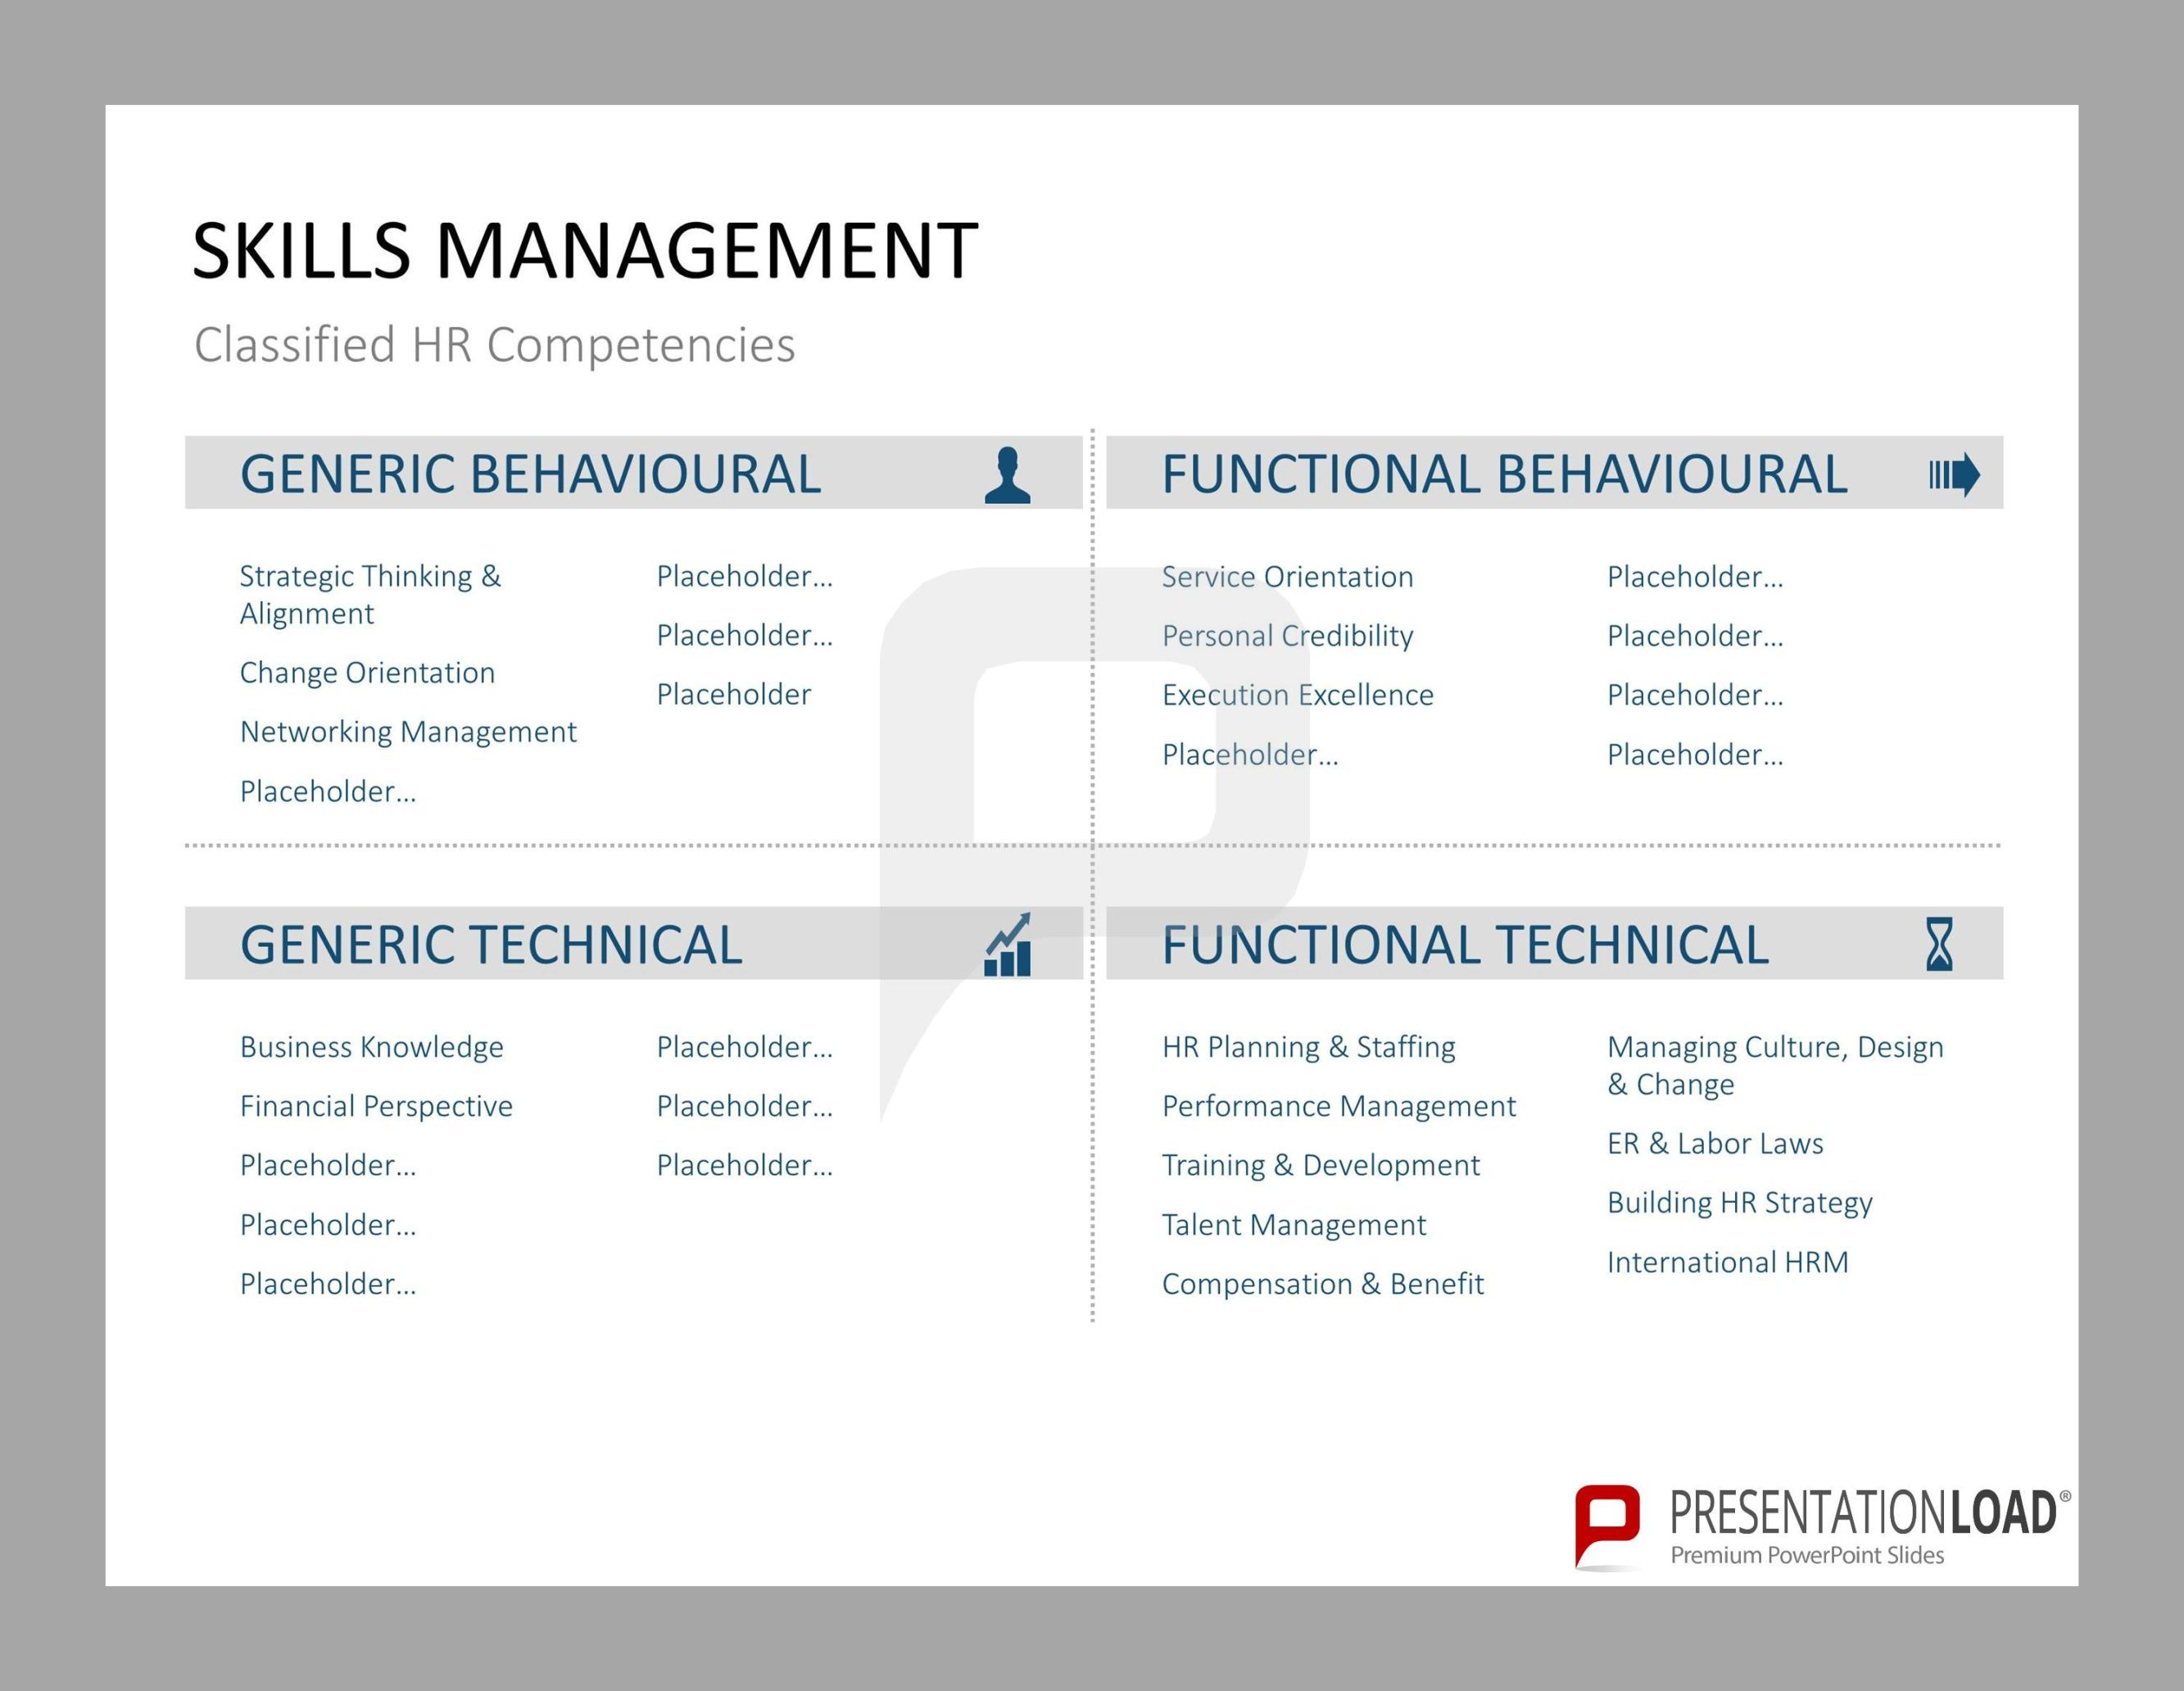 SKILLS MANAGEMENT Classified HR Competencies: FUNCTIONAL TECHNICAL ...